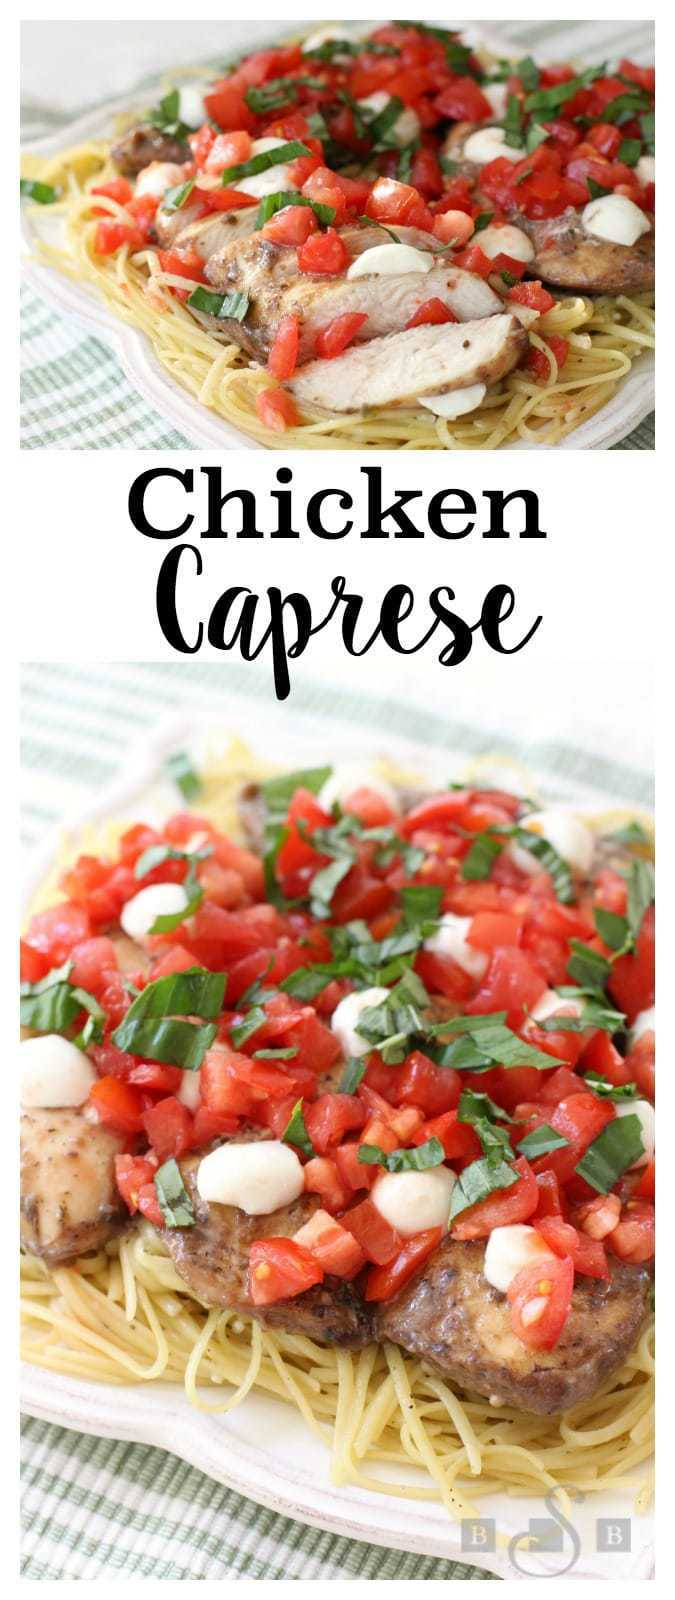 Chicken Caprese - Butter With A Side of Bread